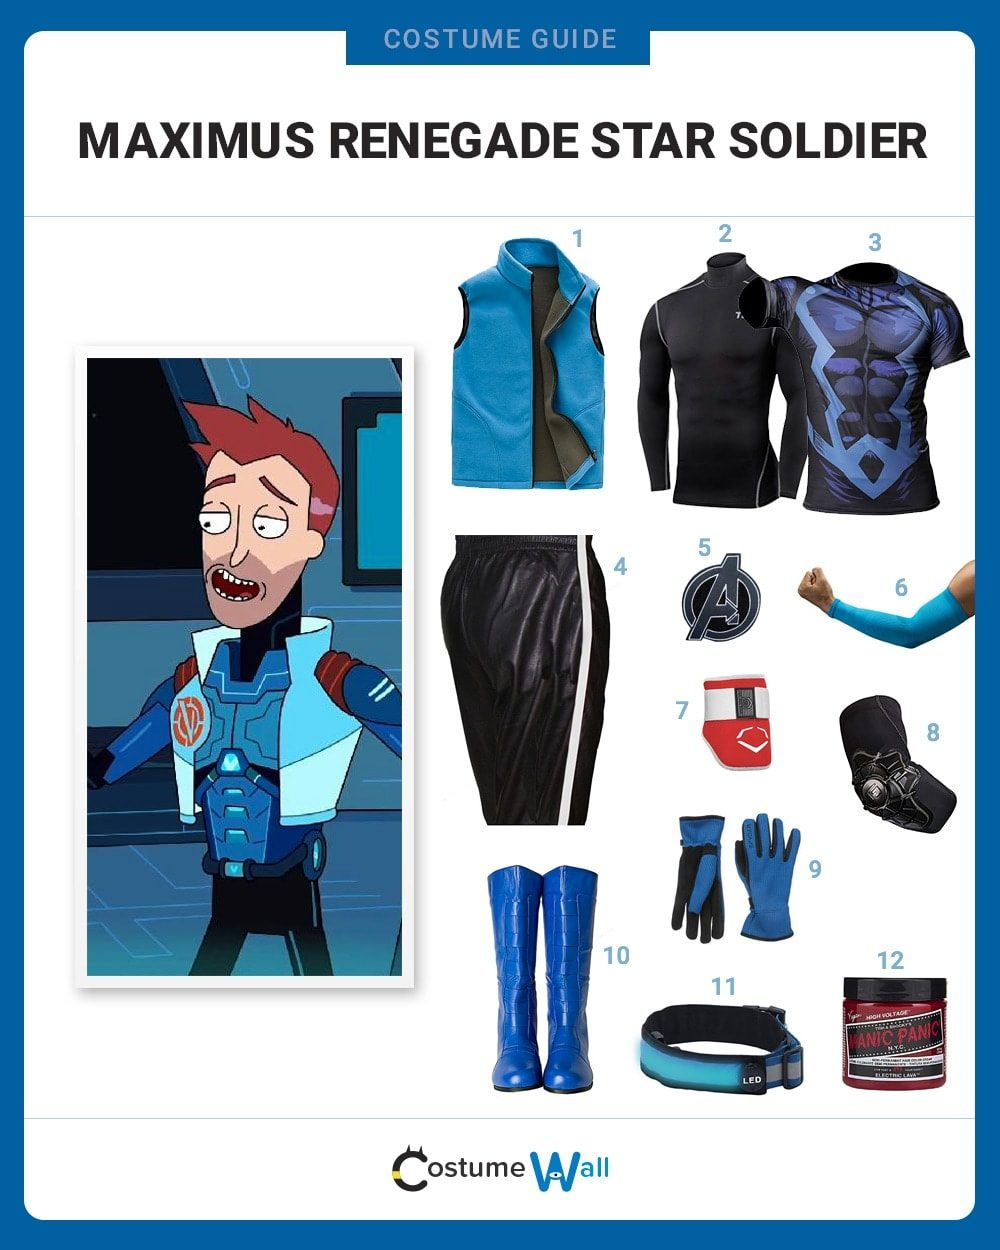 Maximus Renegade Star Soldier Costume Guide